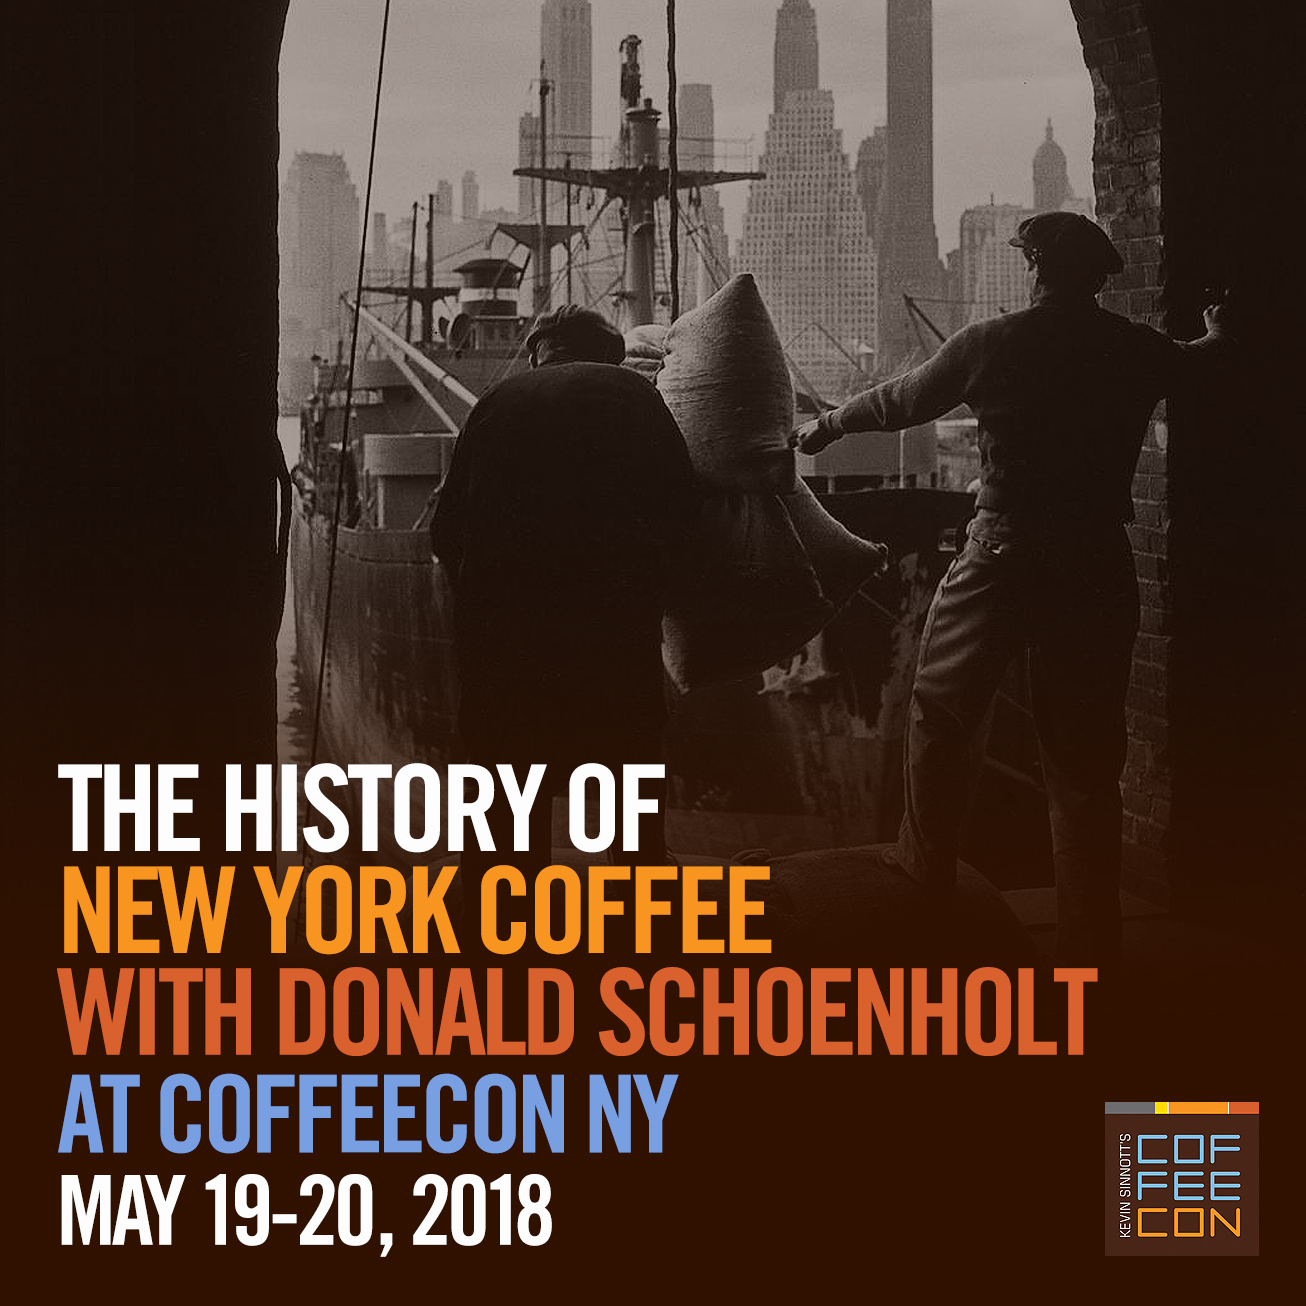 The History of NY Coffee with Donald Schoenholt